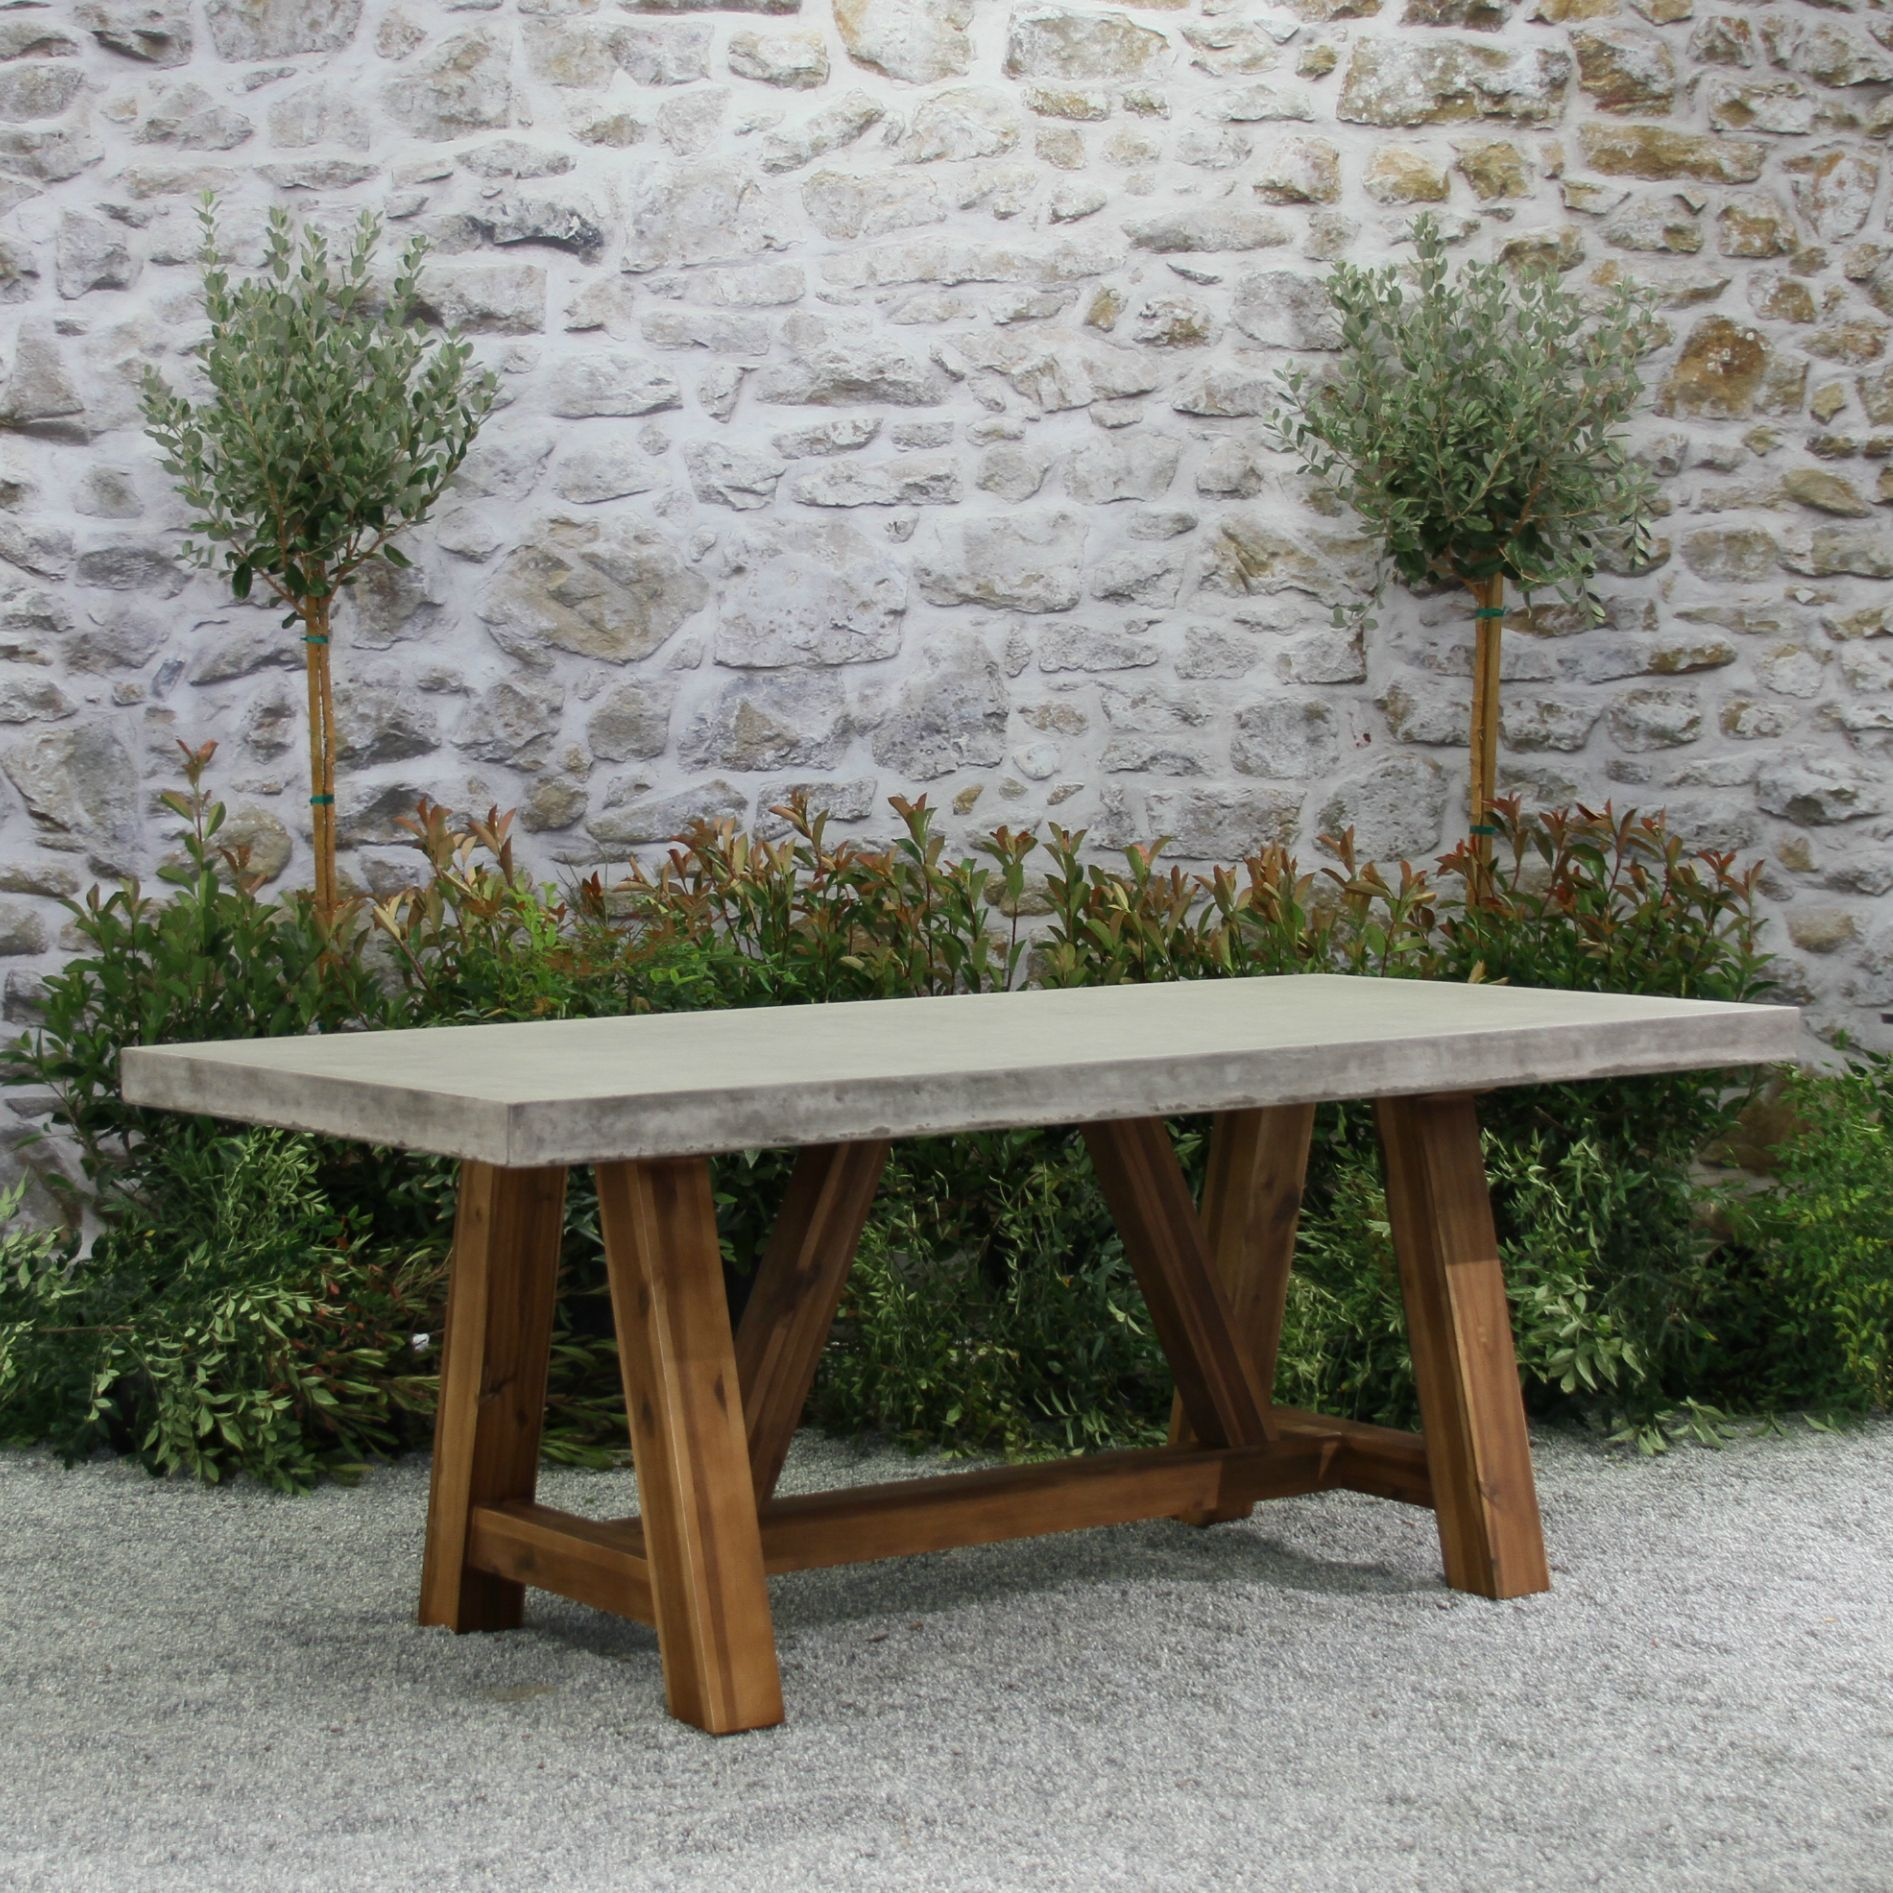 Outdoor Tables On Sale Now An Outdoor Table From Our Teak Outdoor - Teak picnic table and benches